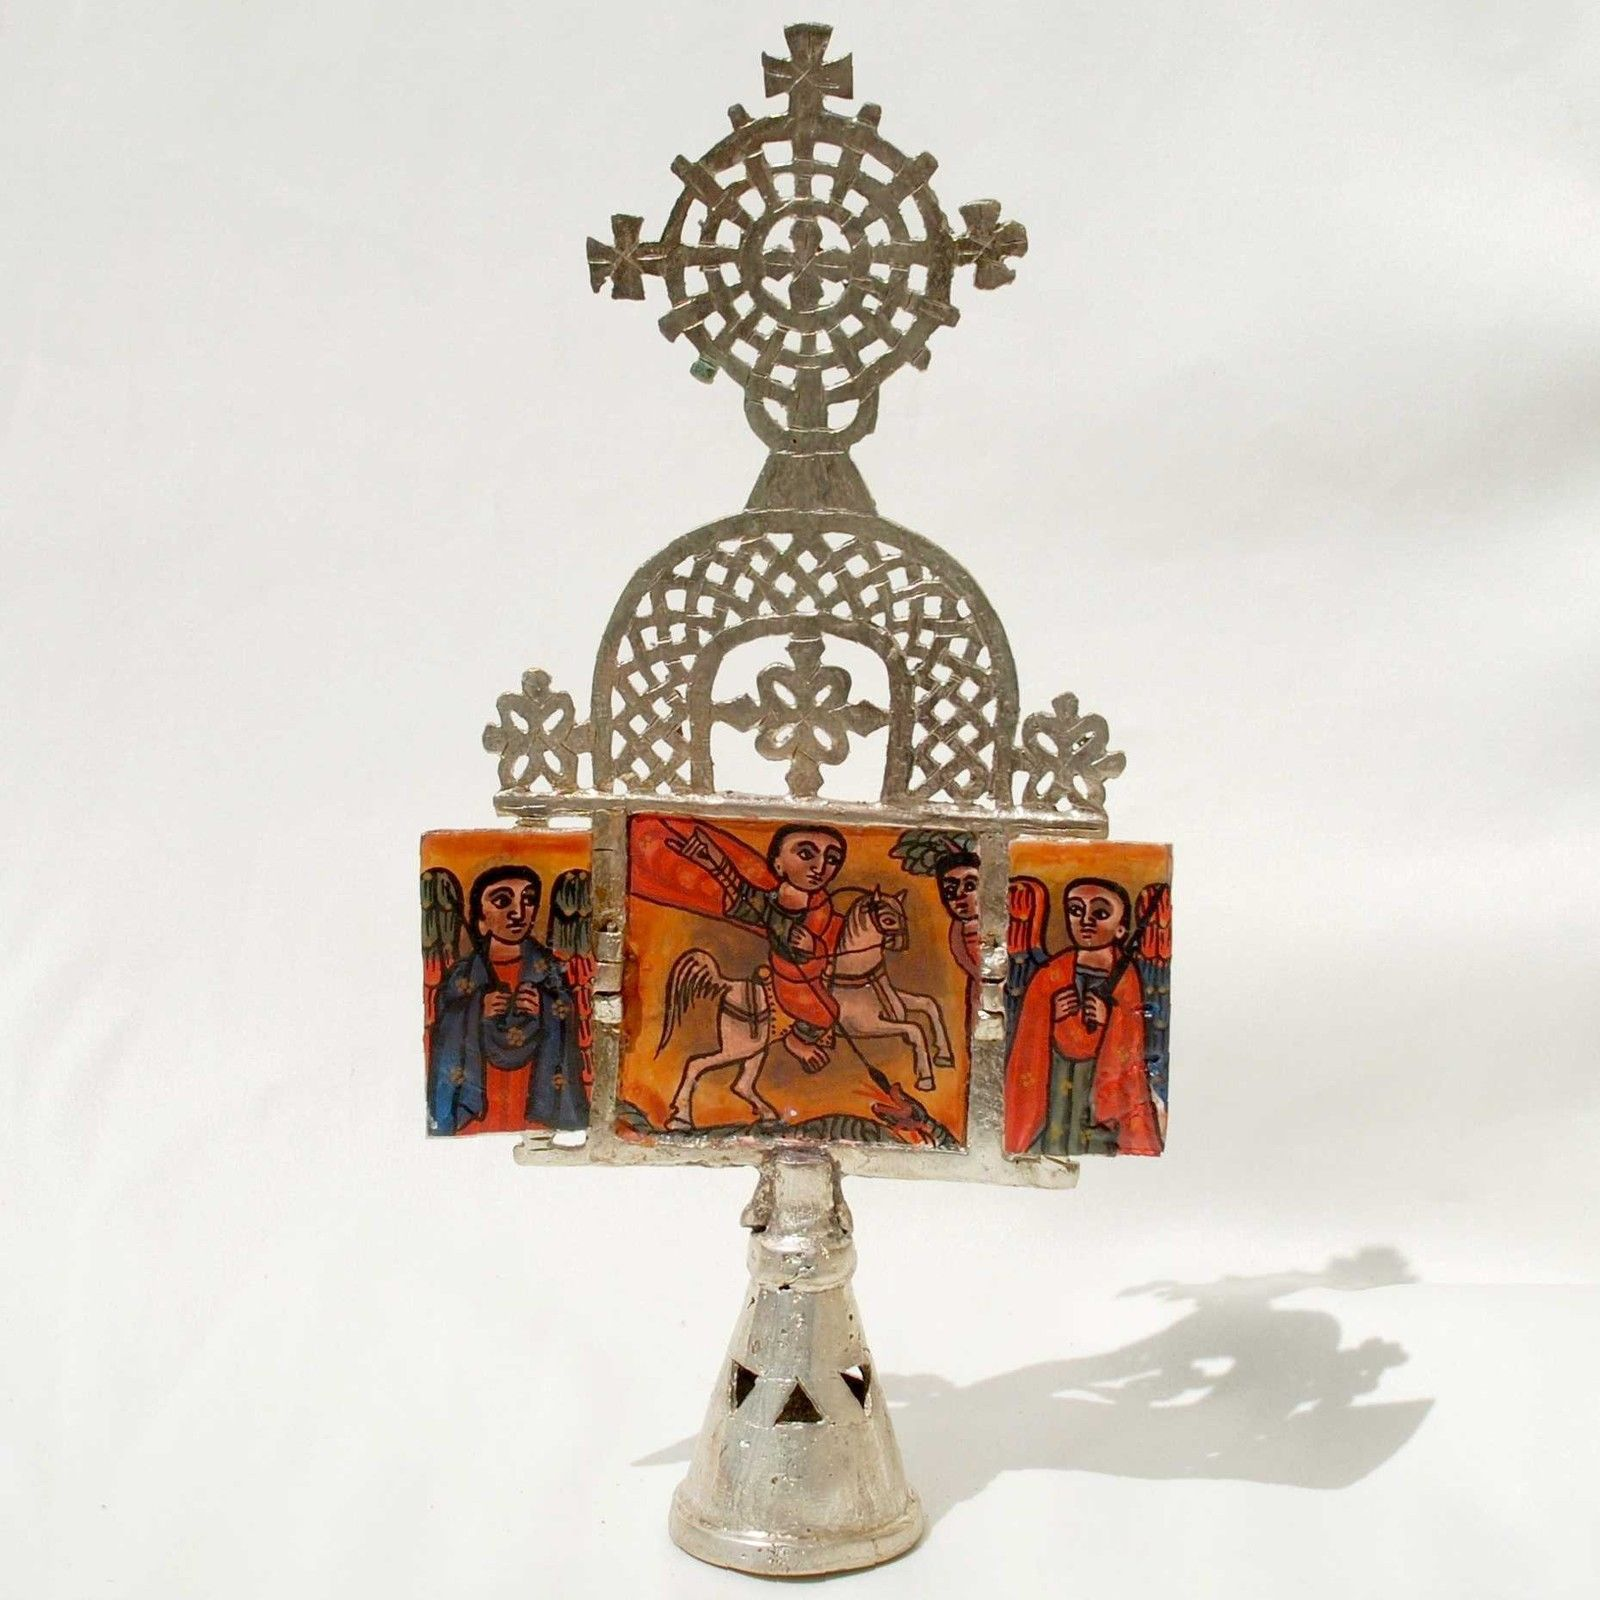 Ethiopian Coptic metal altar with the depiction of St. George,2010s, $75 off eBay